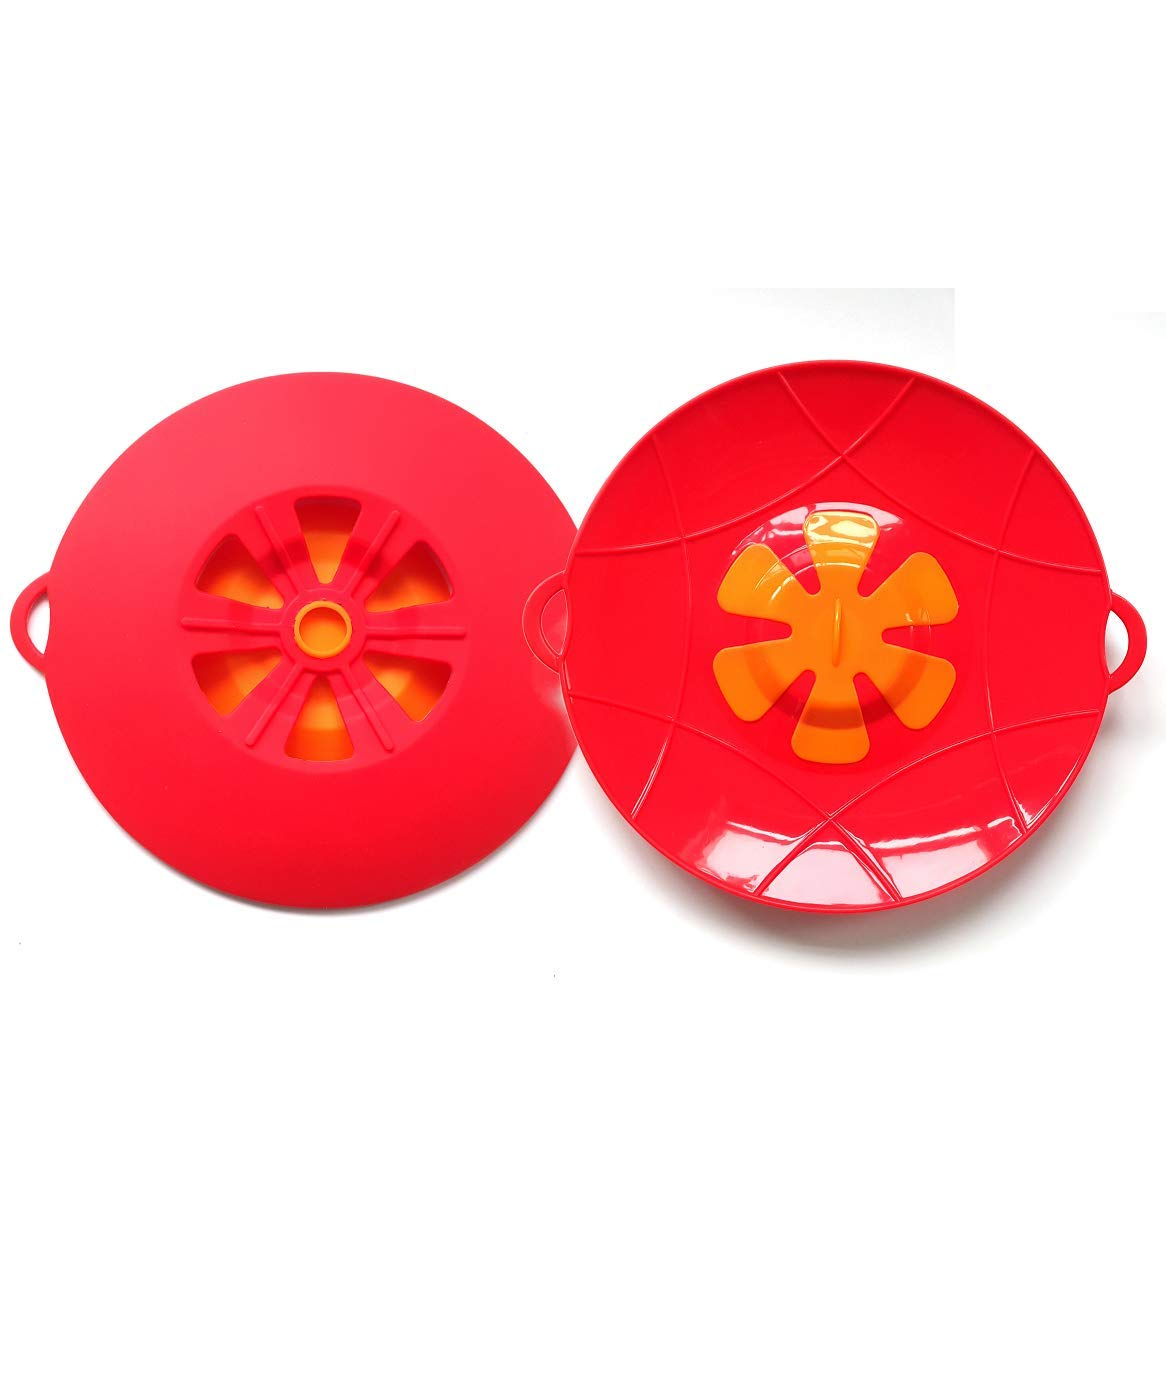 Set of 2 Large Silicone Pan Lid Overflow Spill Stopper, 13 Inch, Stove Top Protection, Boil Over Safeguard